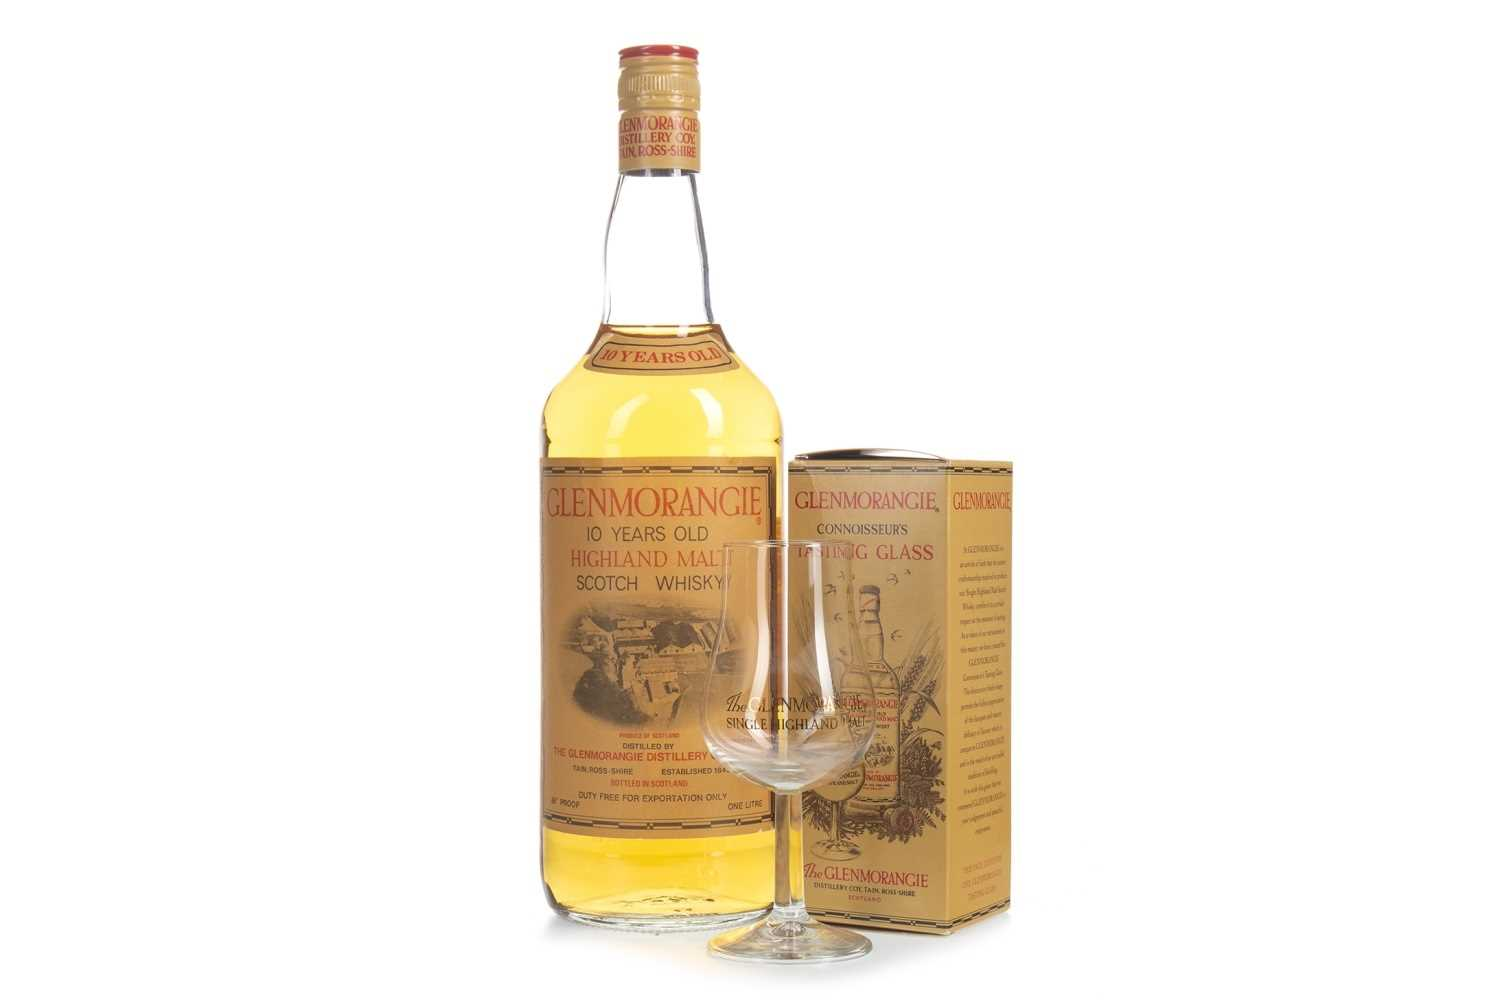 Lot 301-ONE LITRE OF GLENMORANGIE 10 YEARS OLD